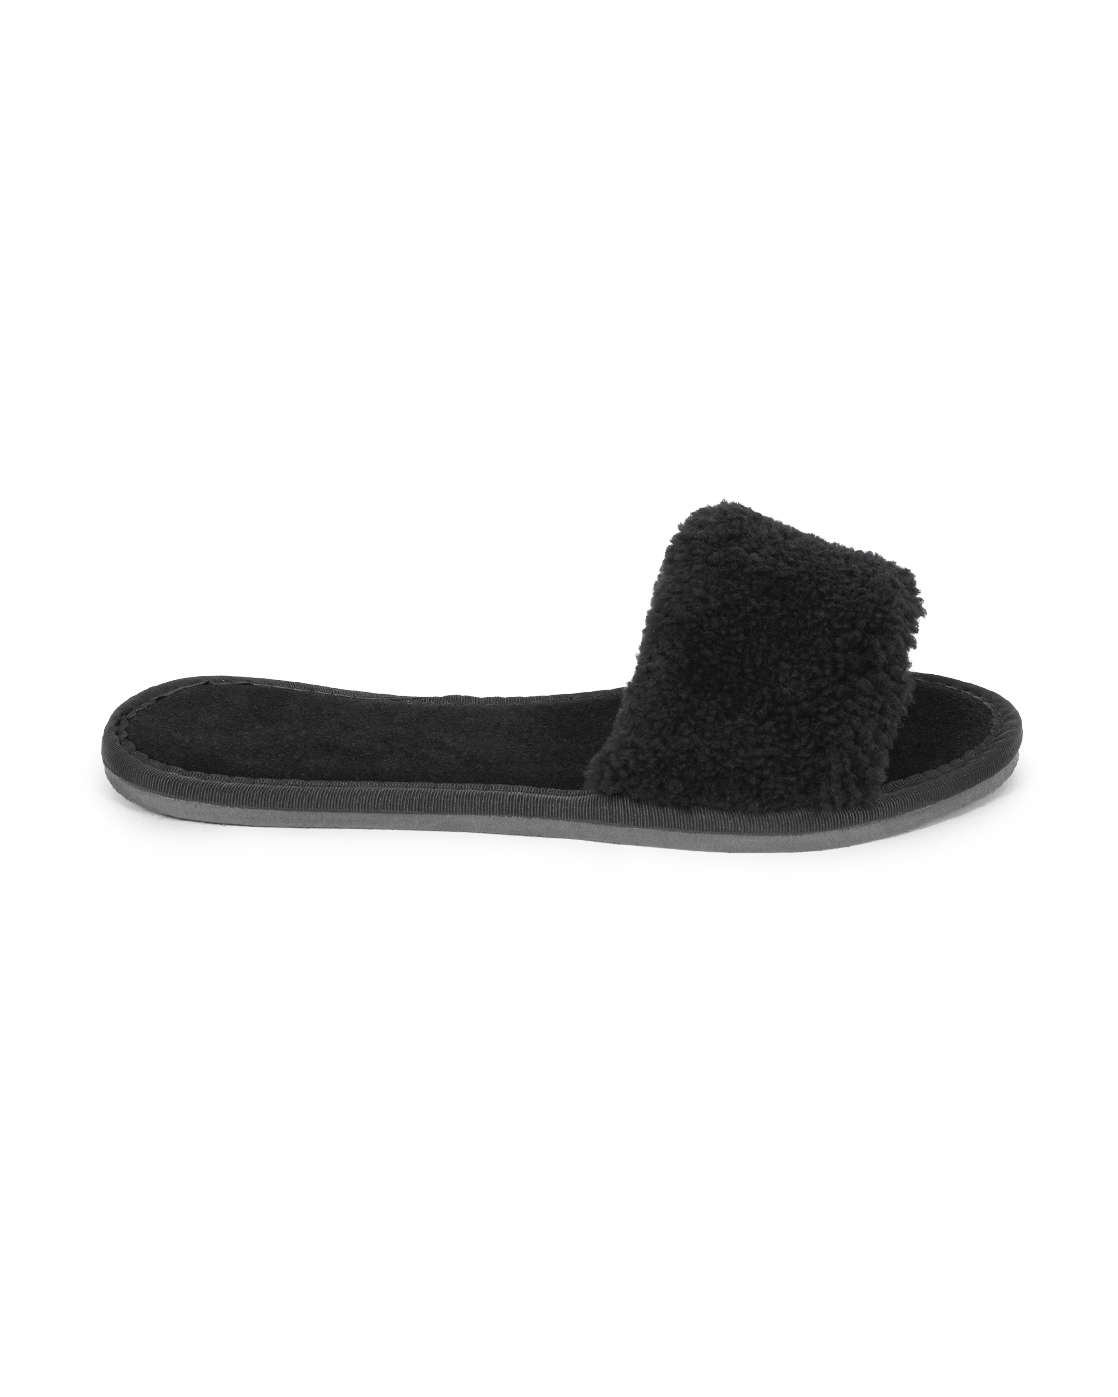 clevedon_suede slide_ink_side.jpg